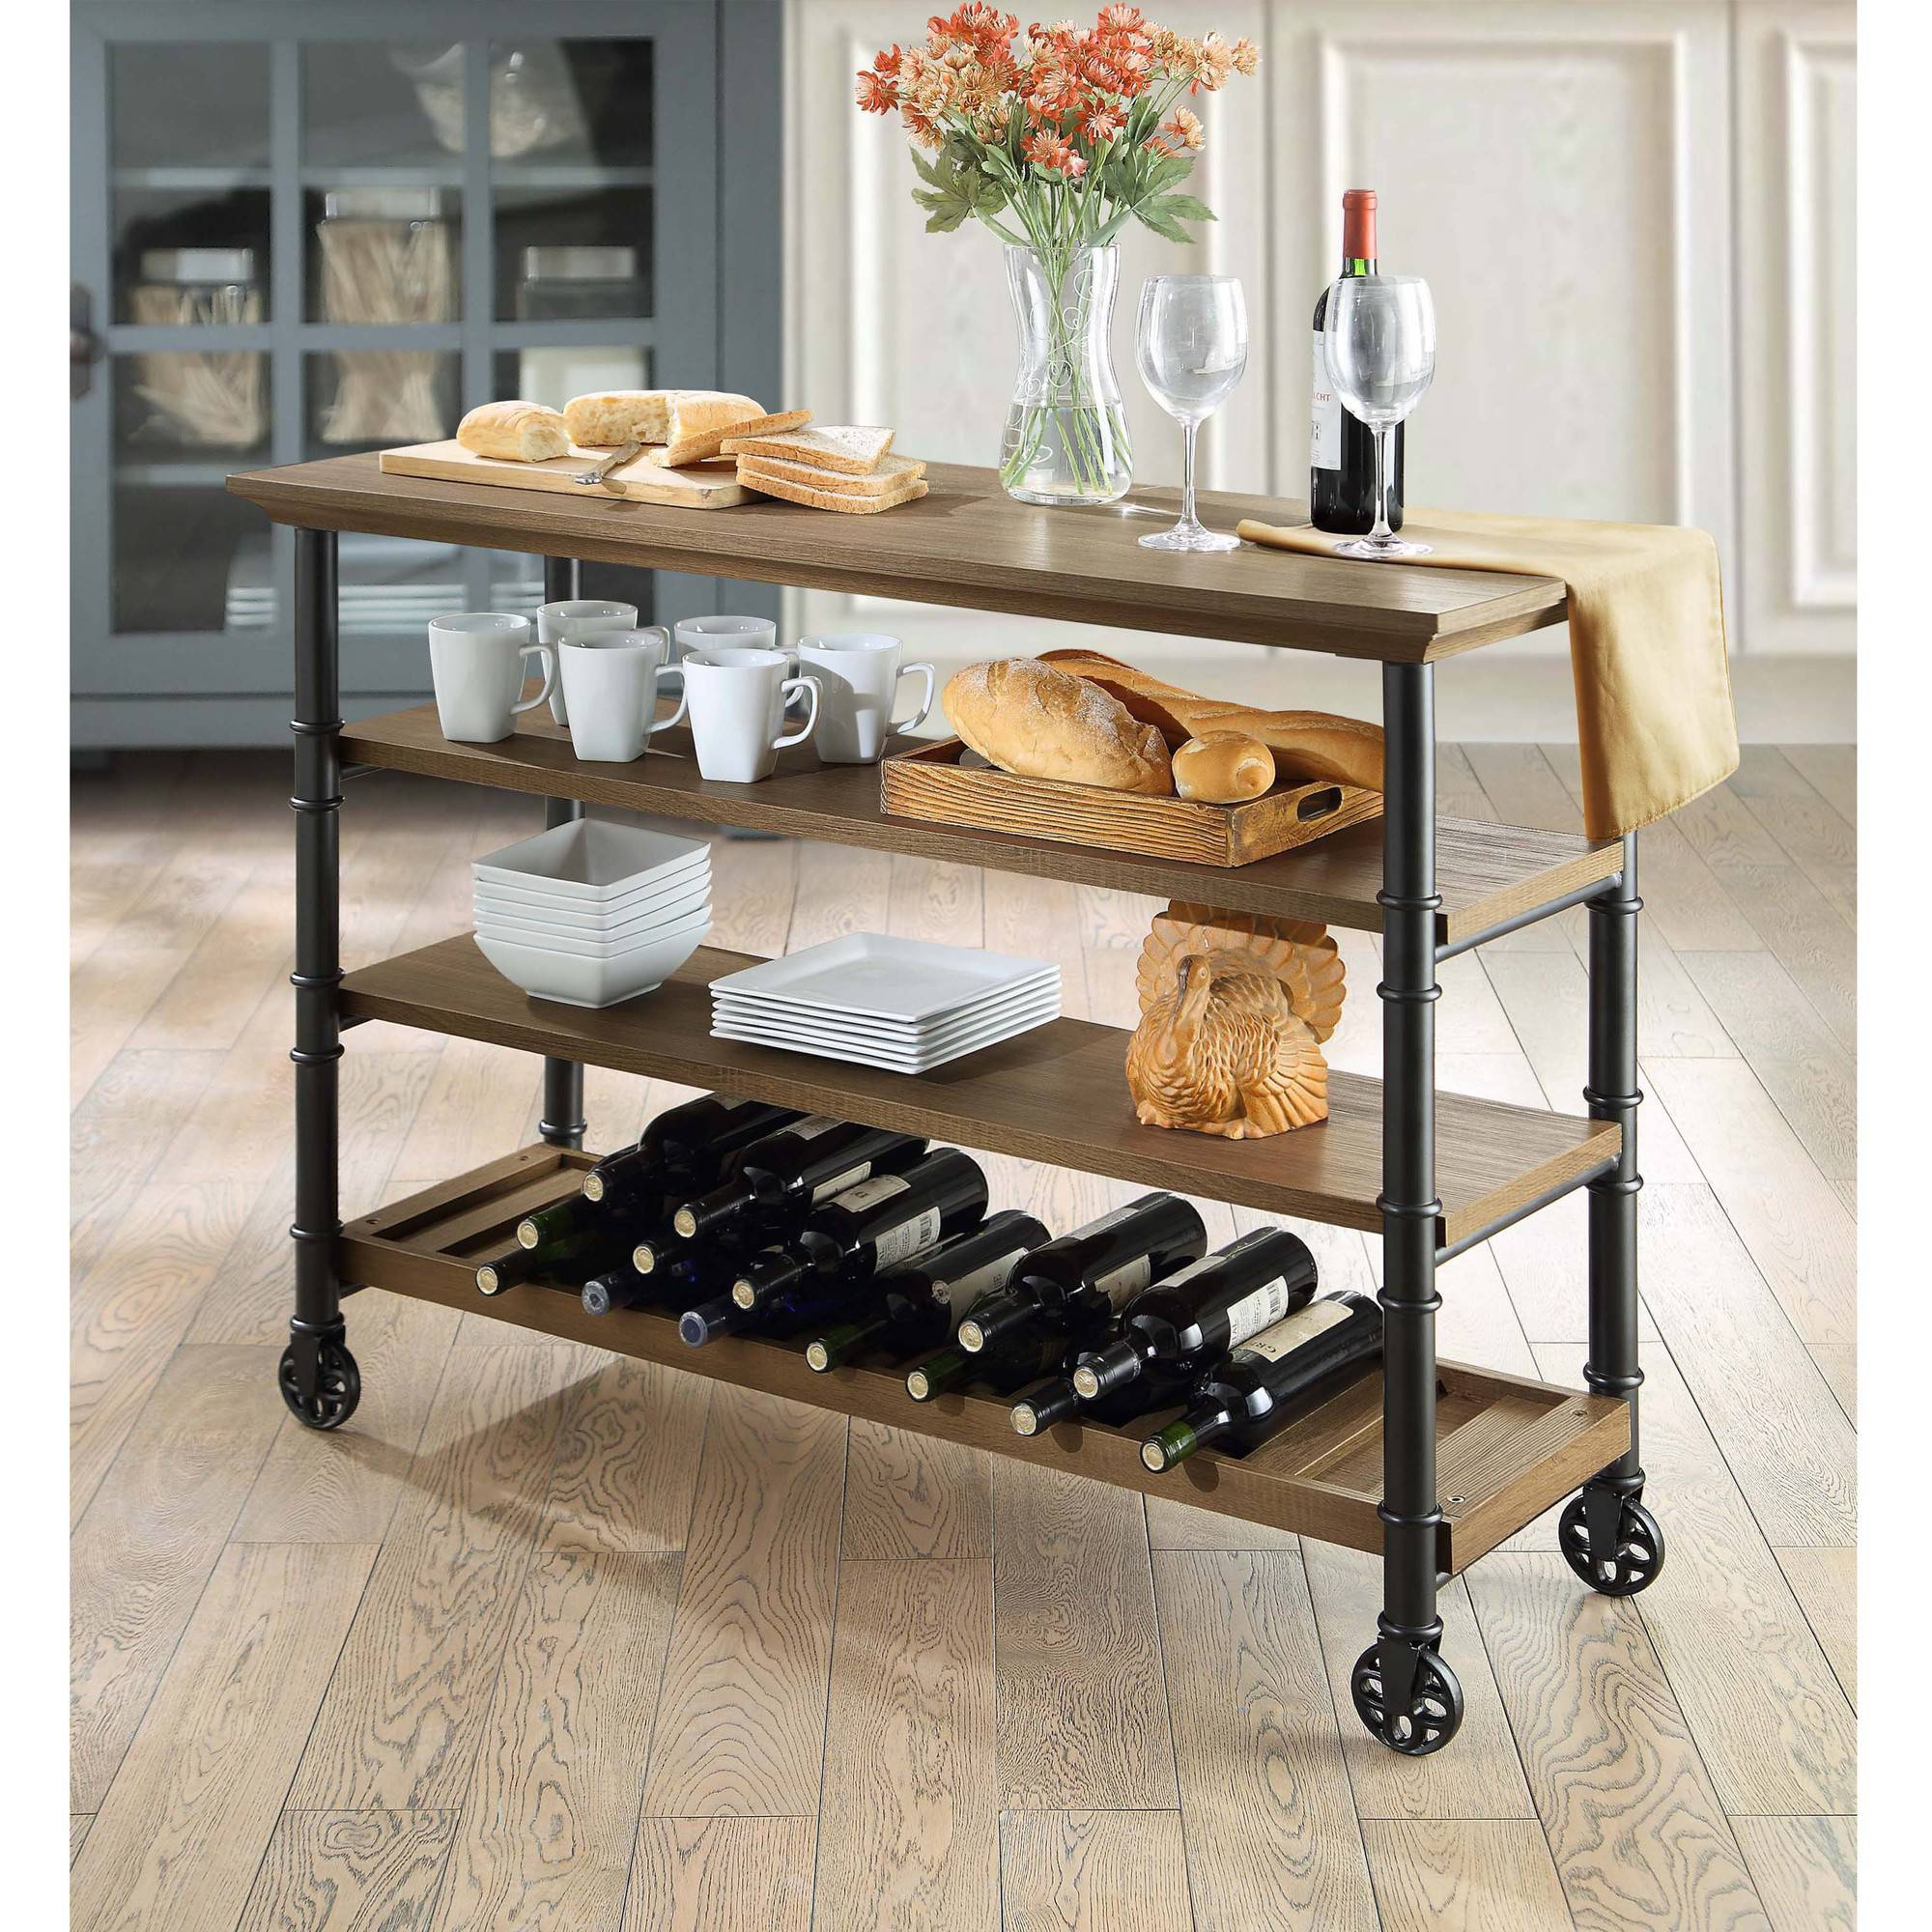 Whalen Santa Fe Portable Kitchen Cart with Wine Rack, Rustic Brown